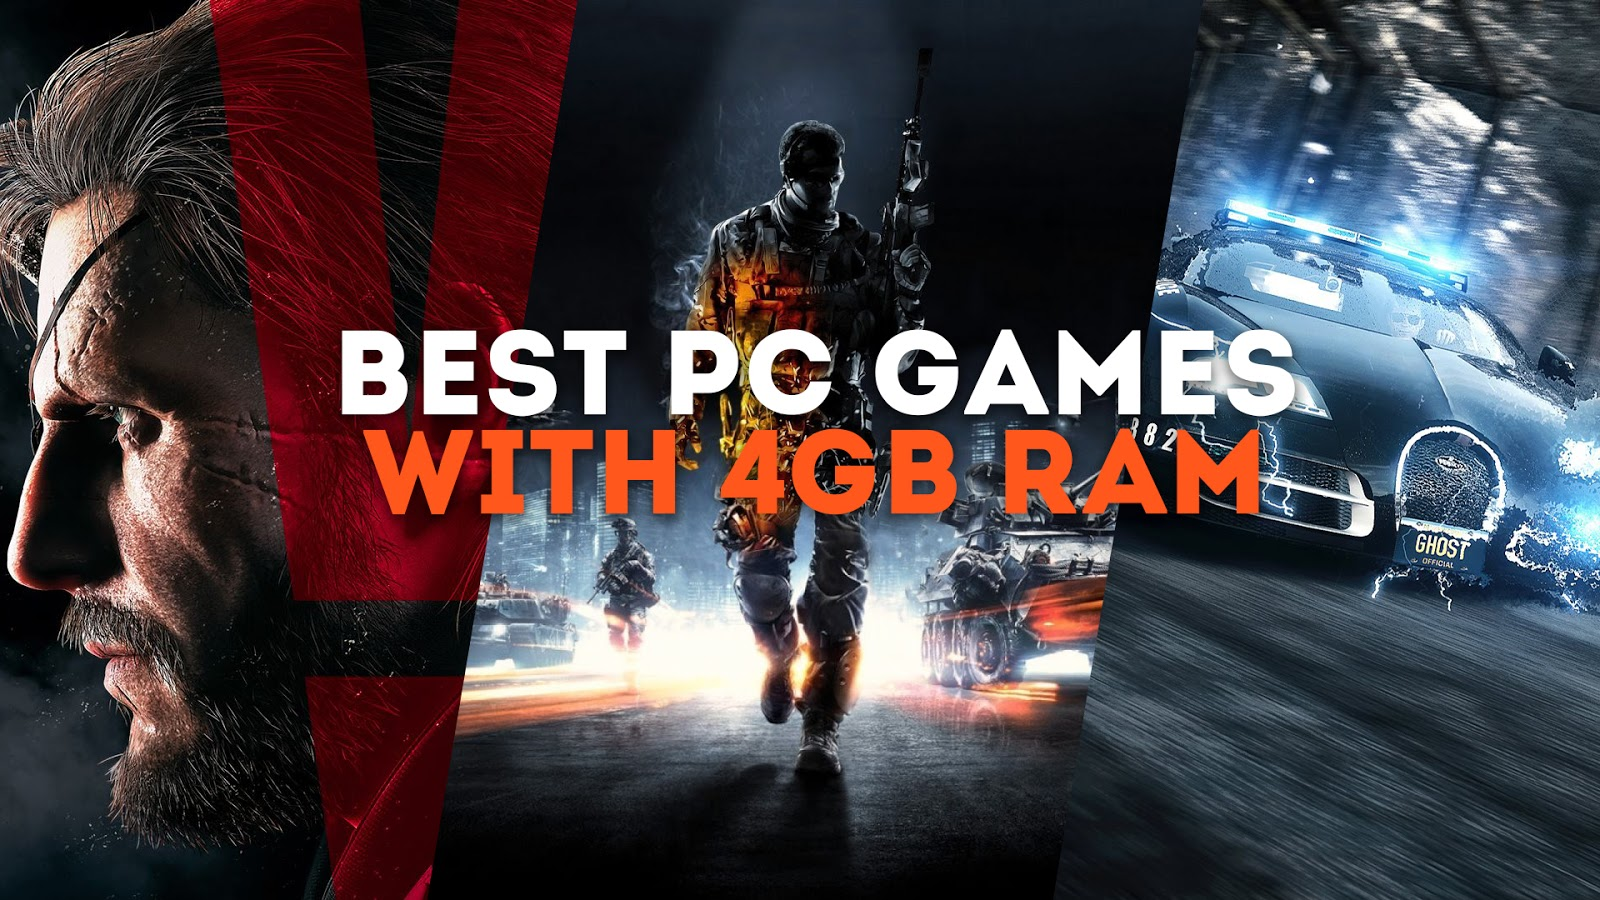 List of known HD PC Games That Can be Played With 4GB of RAM